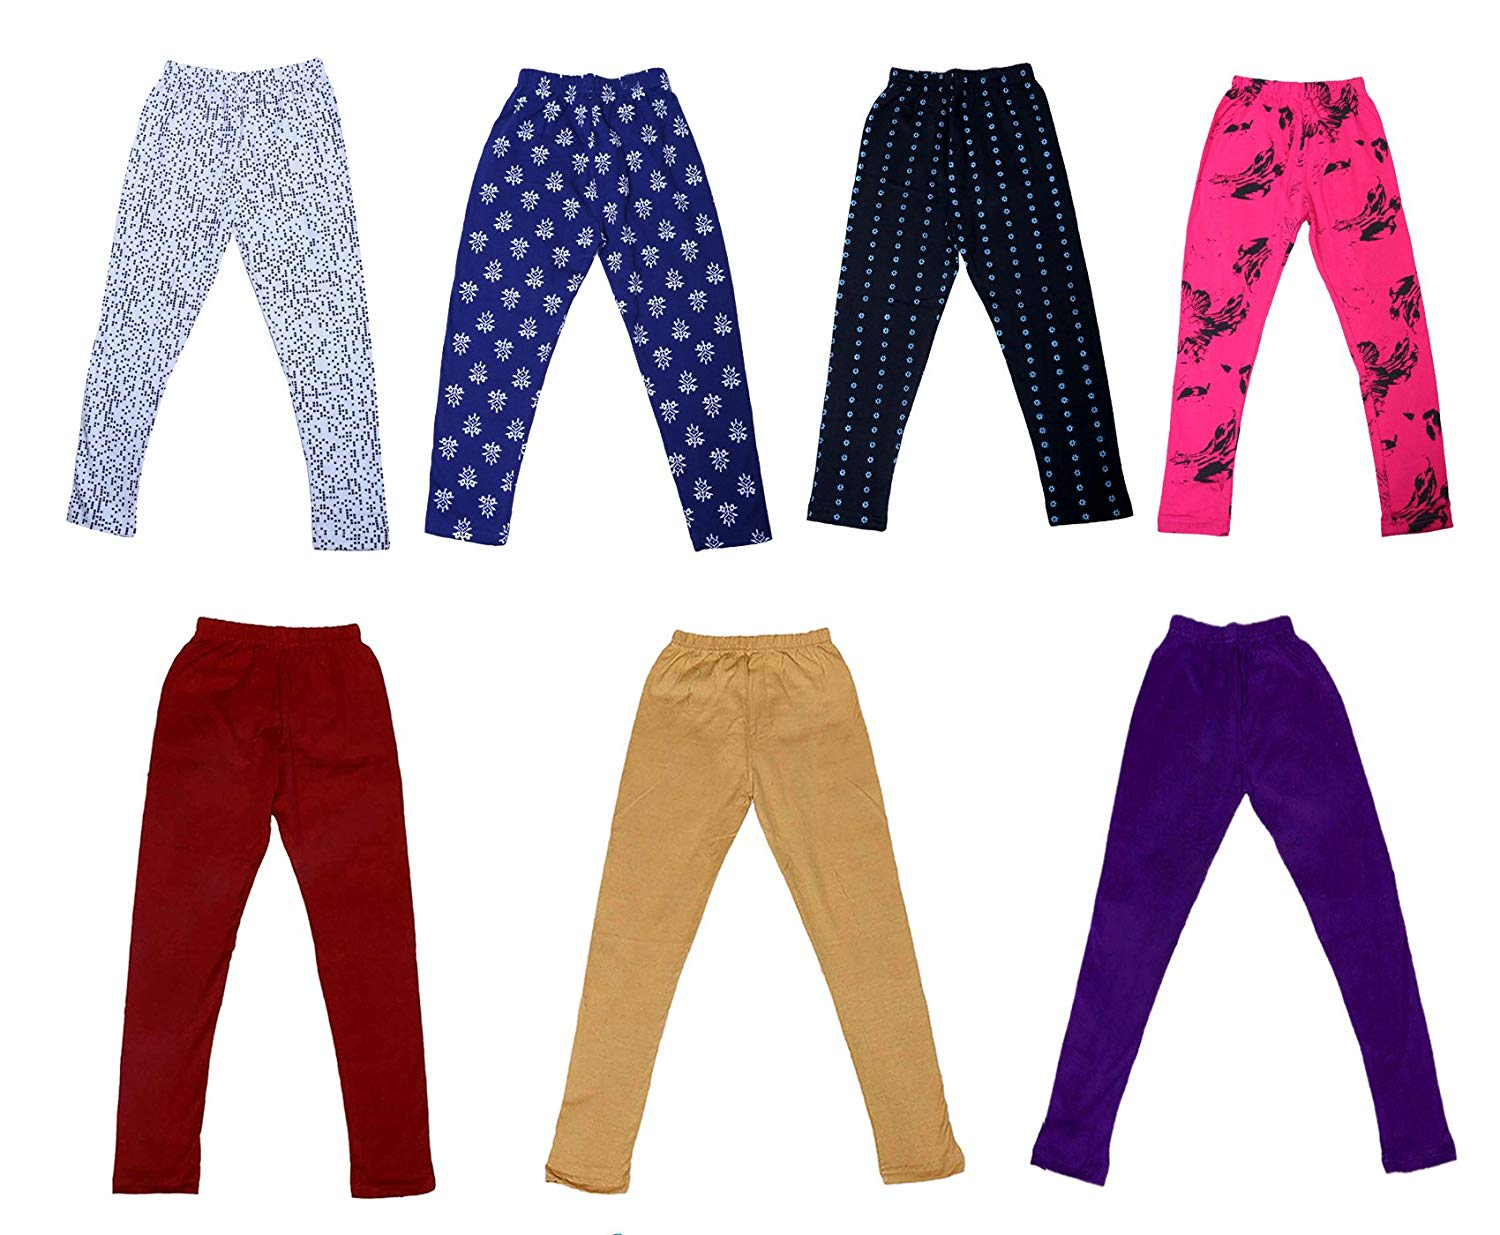 Indistar IndiWeaves Girls Super Soft and Stylish Cotton Printed Legging Pack Of 3